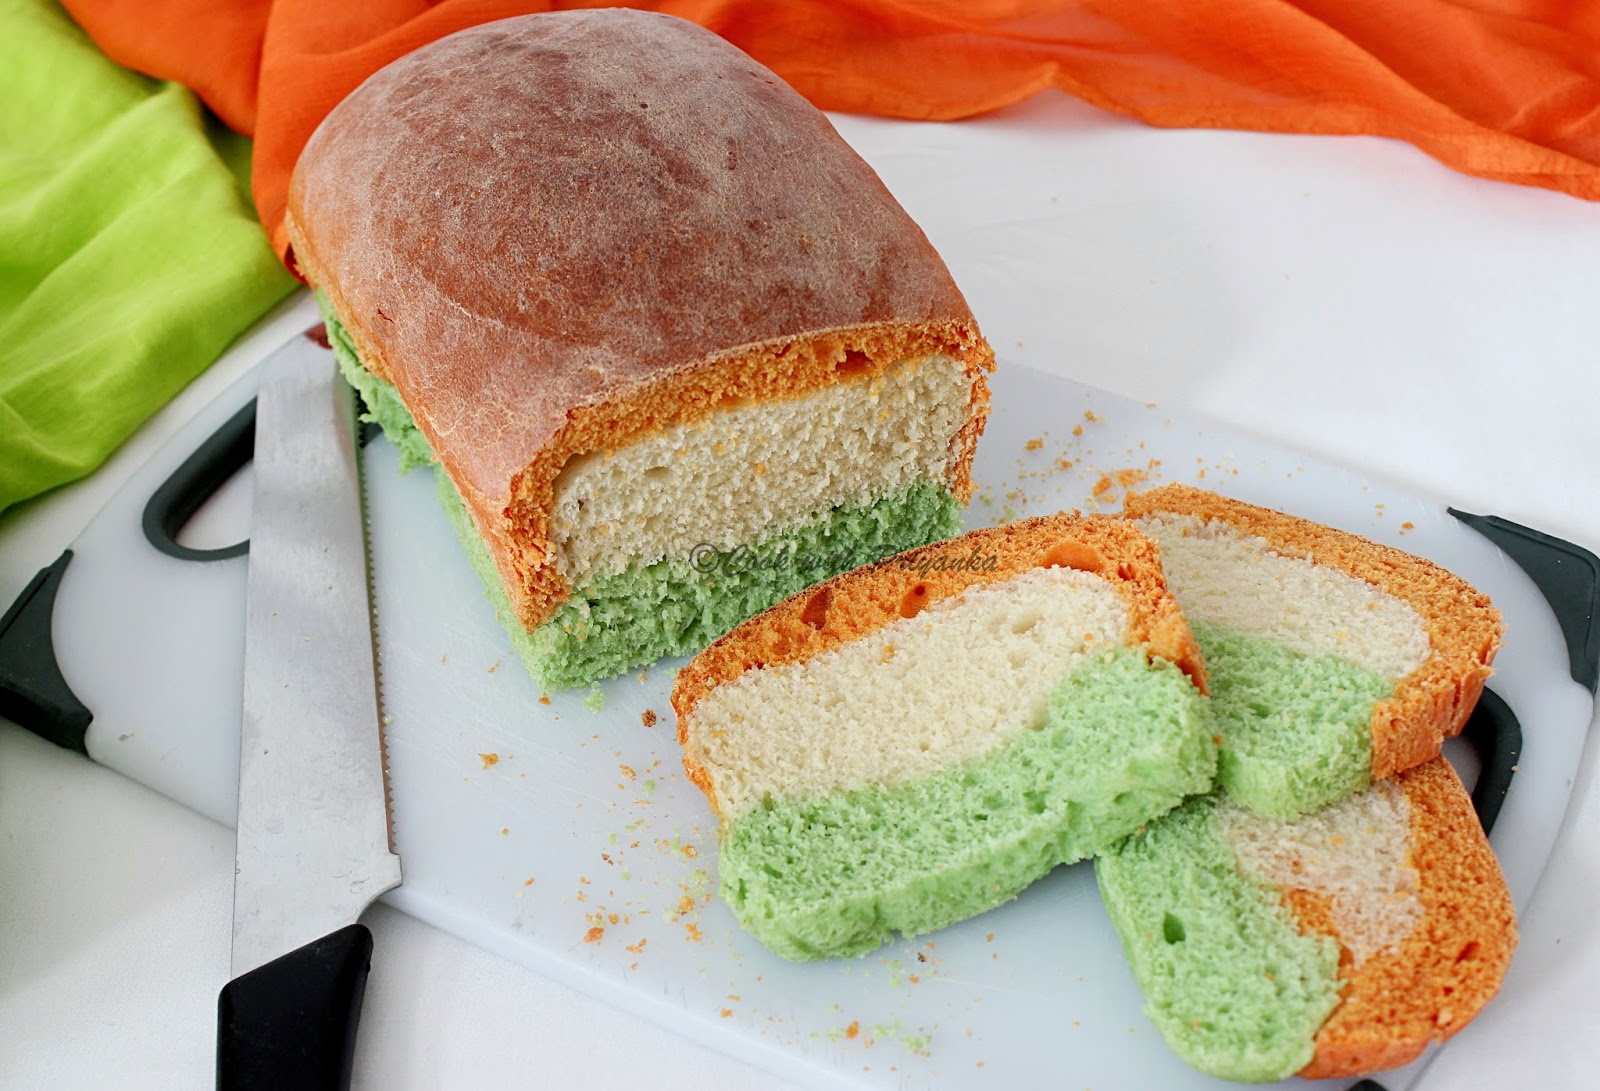 http://cookwithpriyankavarma.blogspot.co.uk/2014/08/tiranga-bread-independence-day-special.html